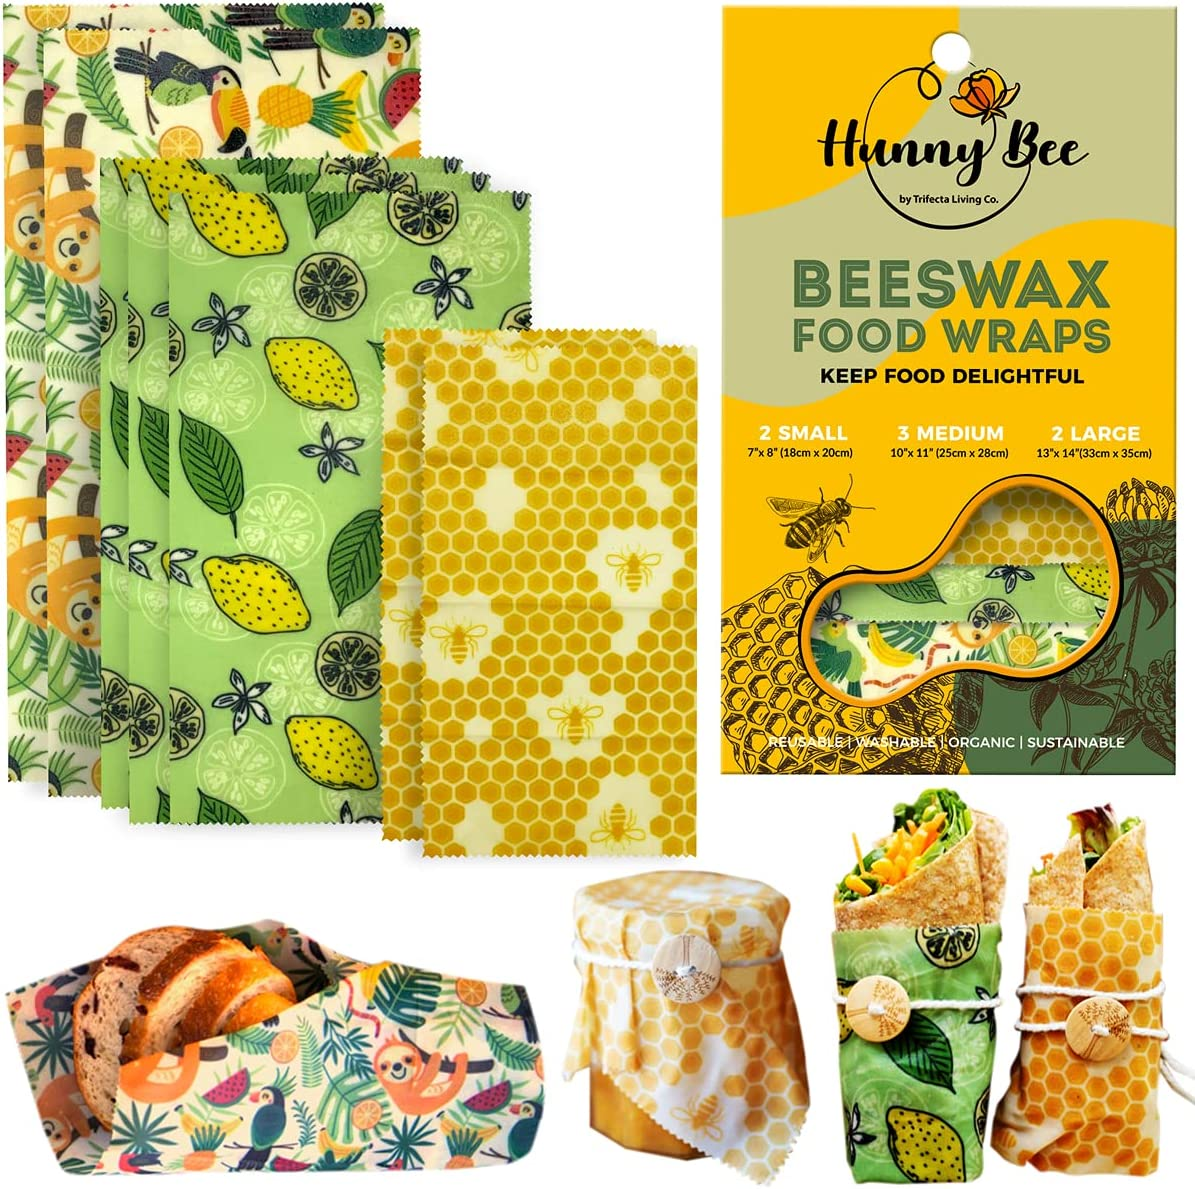 HUNNYBEE Reusable Beeswax Wrap (7 packs) | Beeswax Wraps for Food | Organic Bees Wax | Reusable Sandwich Wrap | Sustainable Gifts | Beewax Wrapping with Natural Jojoba Oil